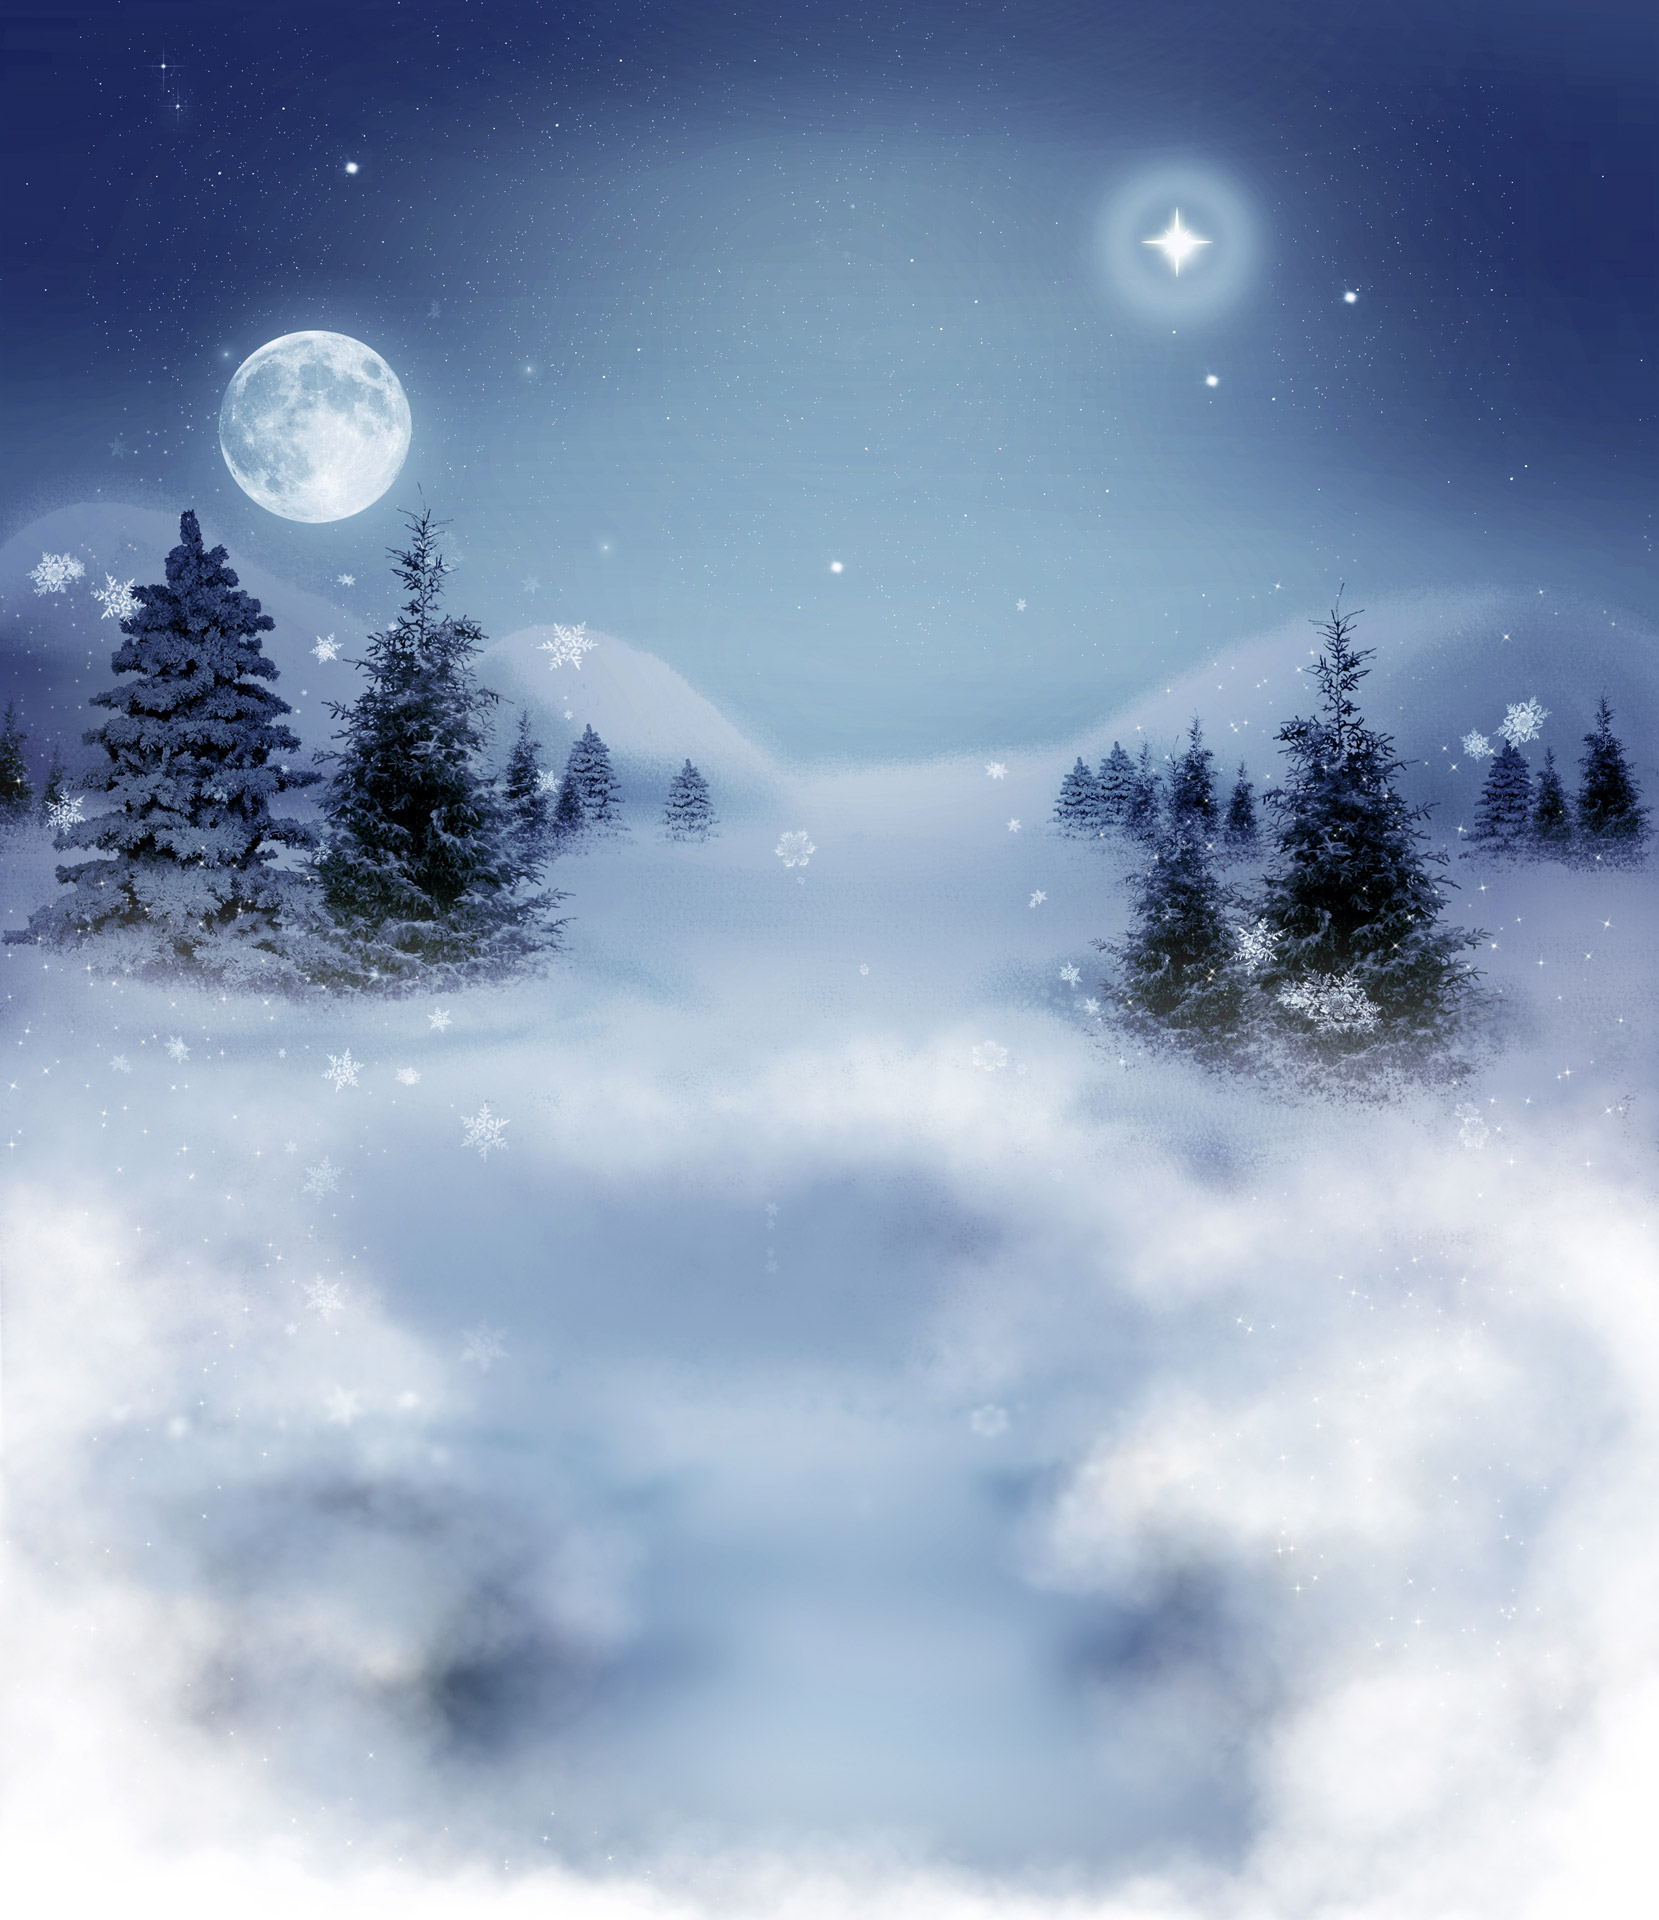 Christmas Falling Snow Wallpaper Note 3 Winter Landscape Free Stock Photo Public Domain Pictures